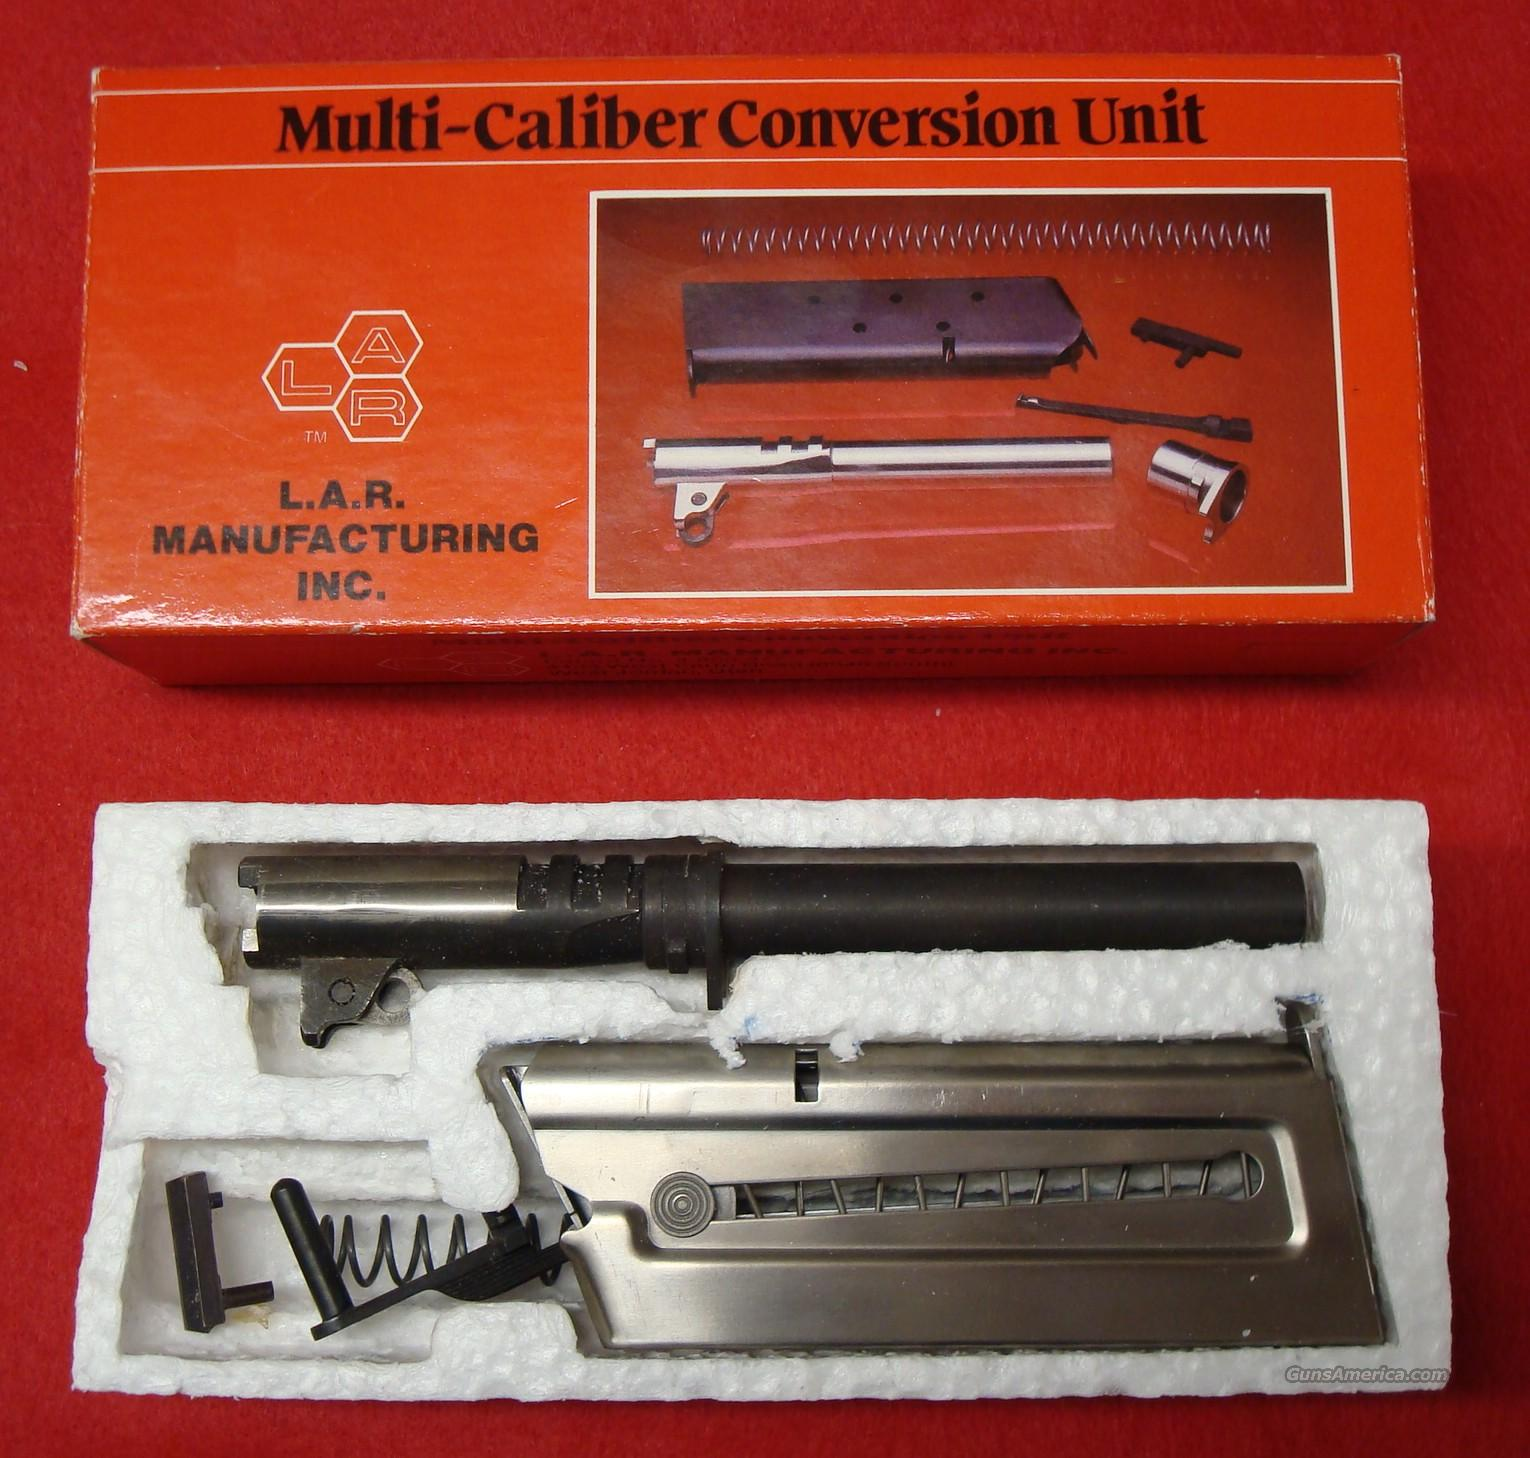 LAR Grizzly .357 Magnum Conversion Kit  Guns > Pistols > LAR/Grizzly Mfg. Co. Pistols